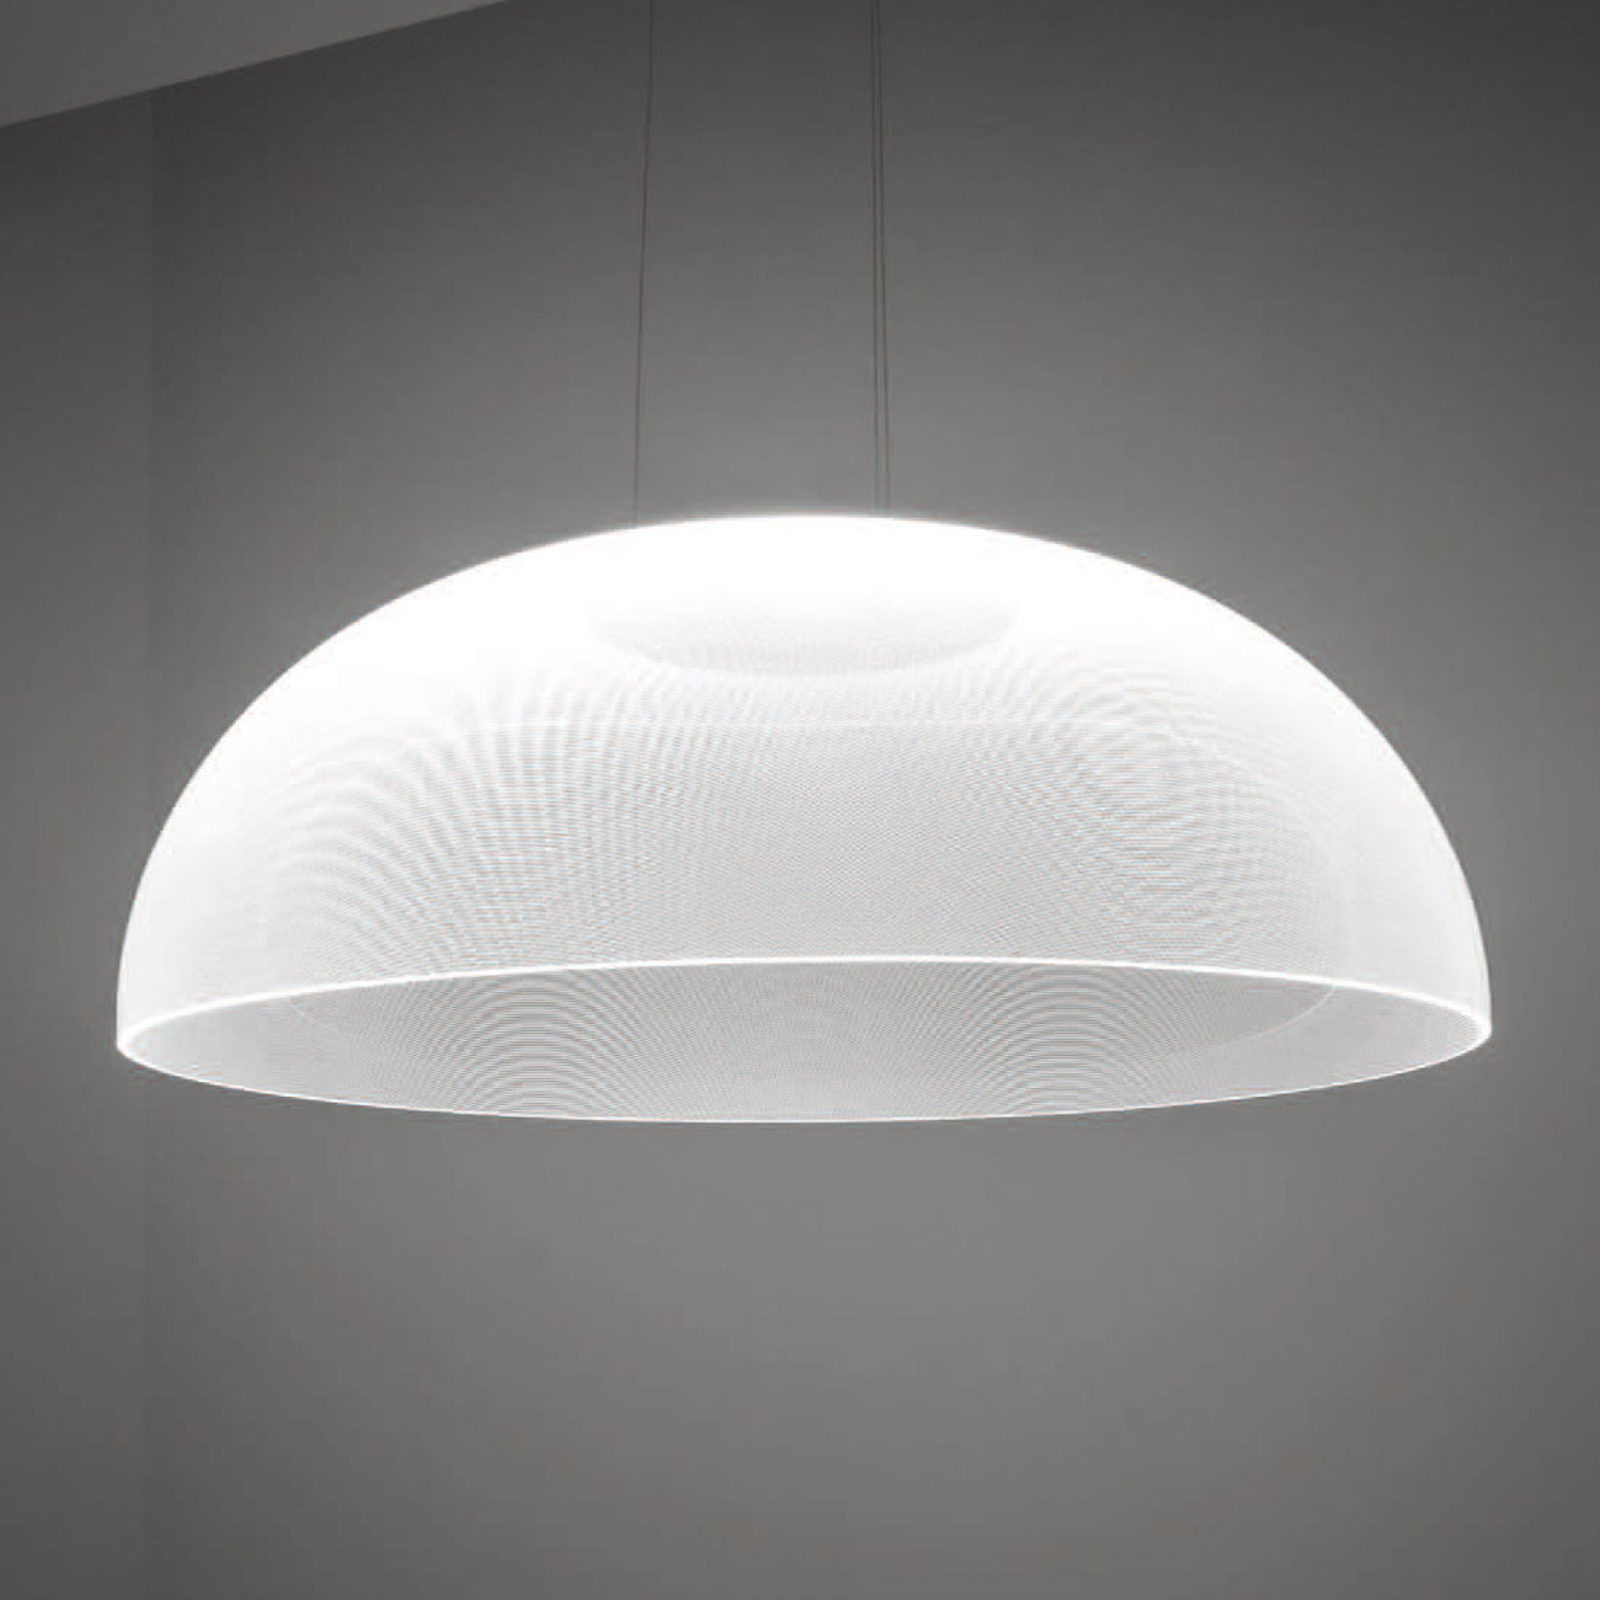 Suspension LED Demì, dimmable avec DALI